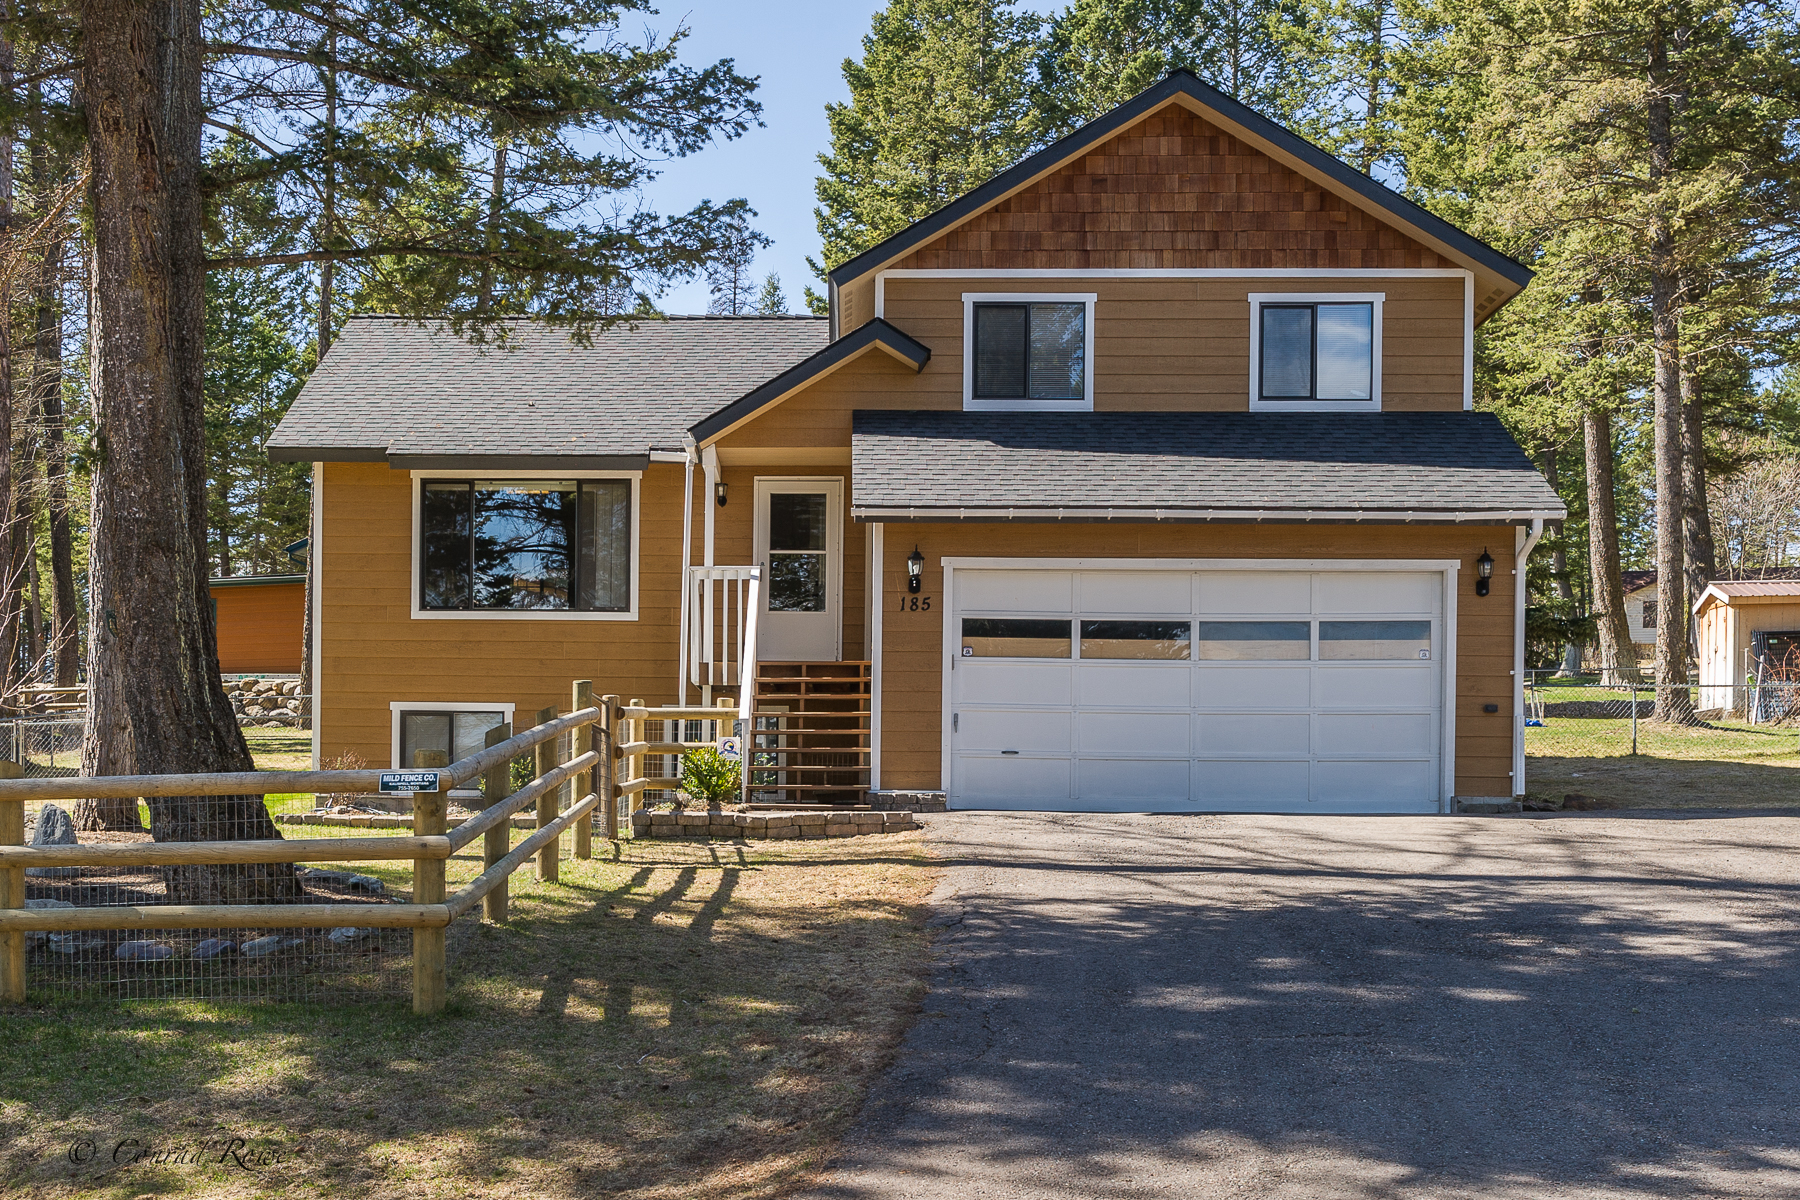 Single Family Home for Sale at 185 Mallard Loop Whitefish, Montana 59937 United States